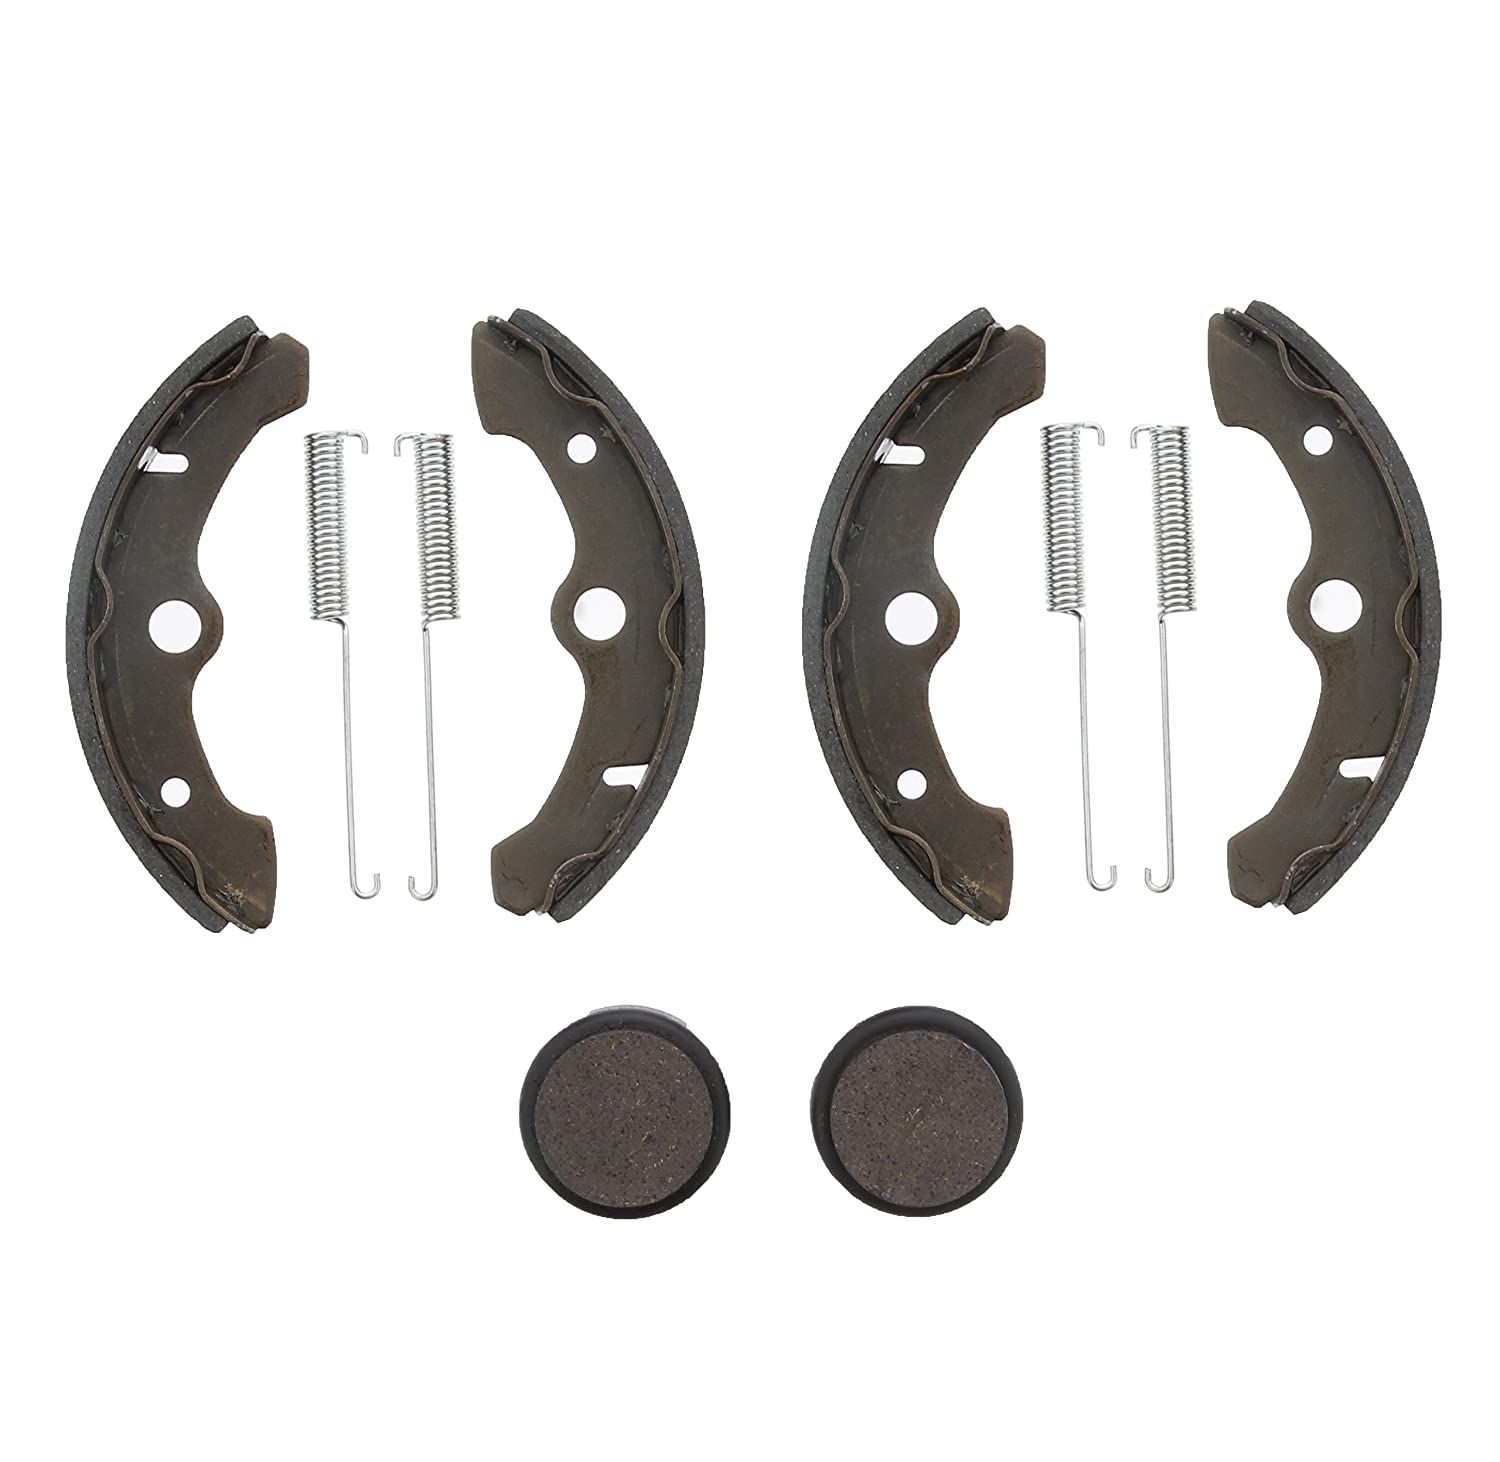 Race Driven Yamaha Front Brake Shoes & Rear Severe Duty Brake Pads for ATV UTV Yamaha Big Bear YFM 350 Race-Driven